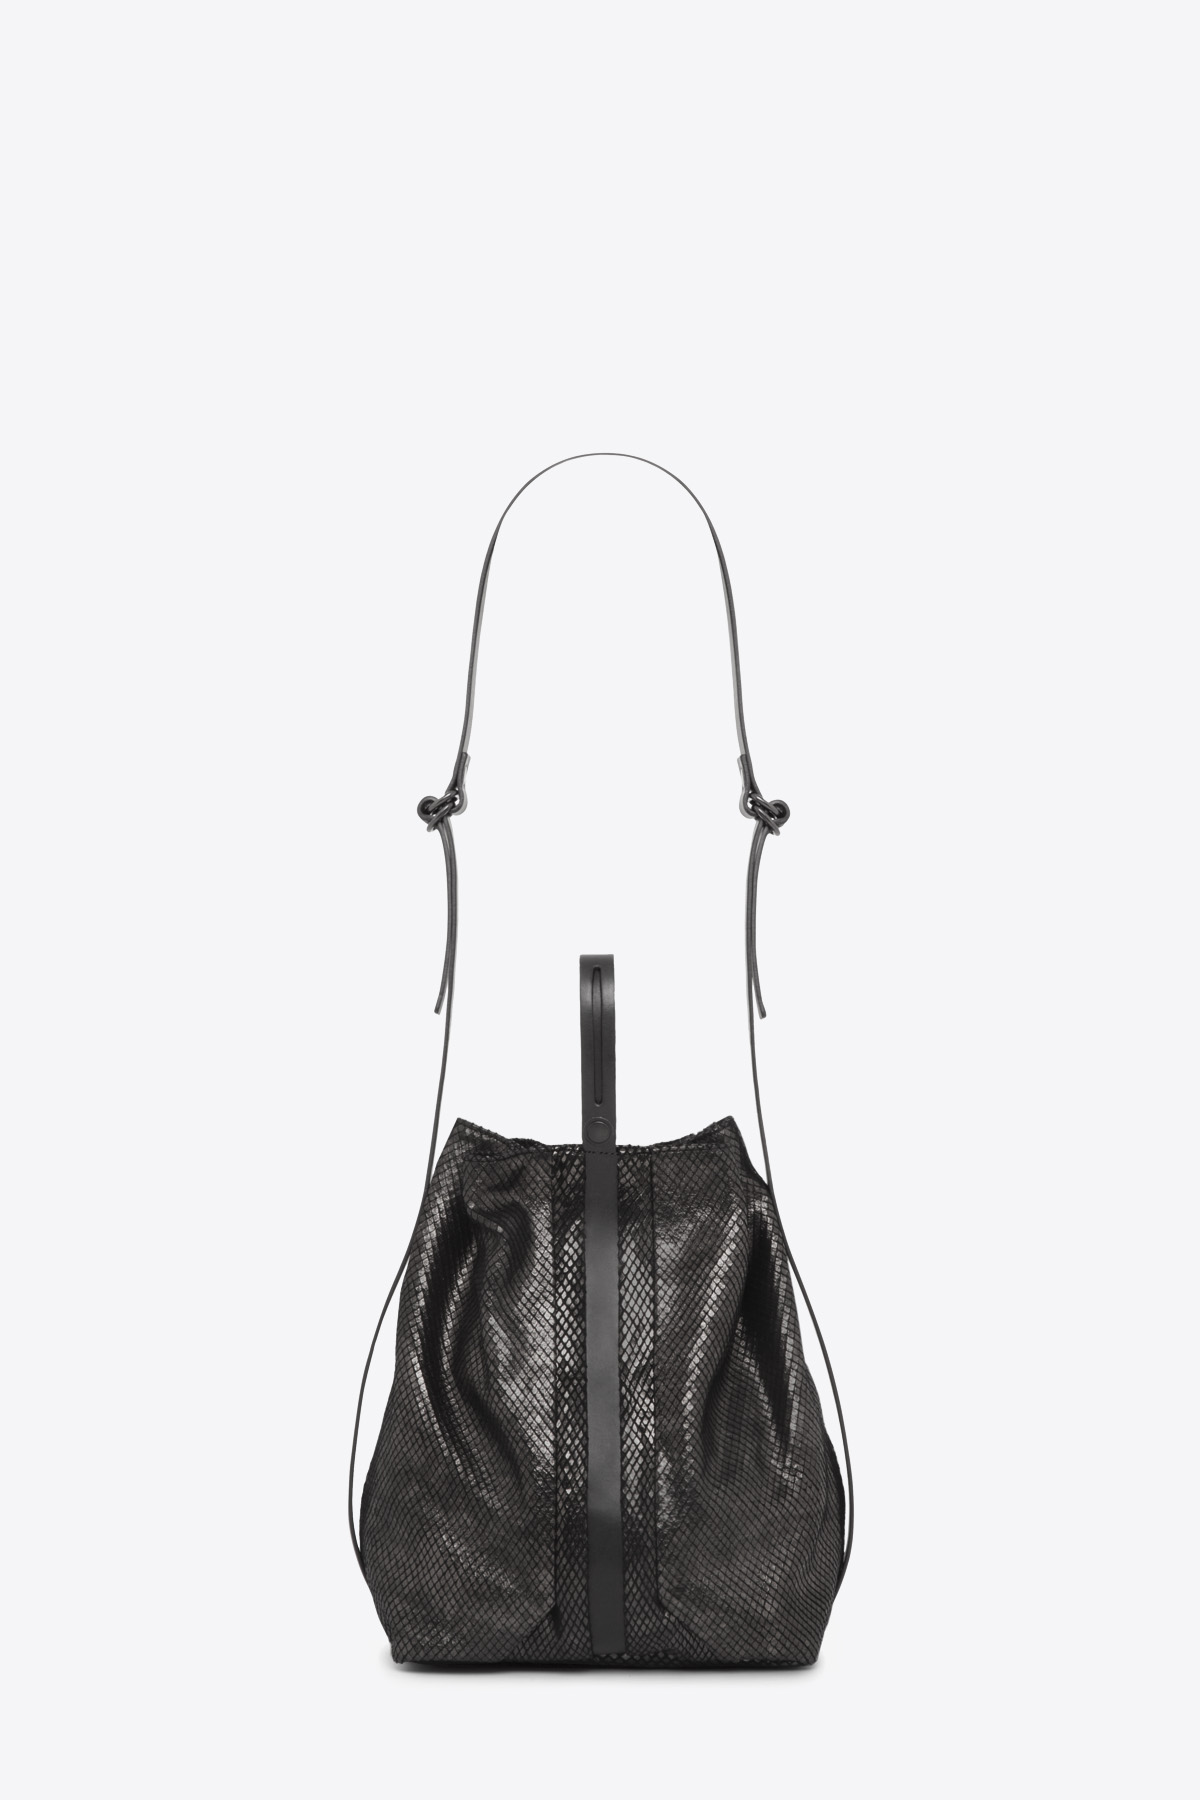 dclr010-bucketbag-a23-backsnakeblack-back